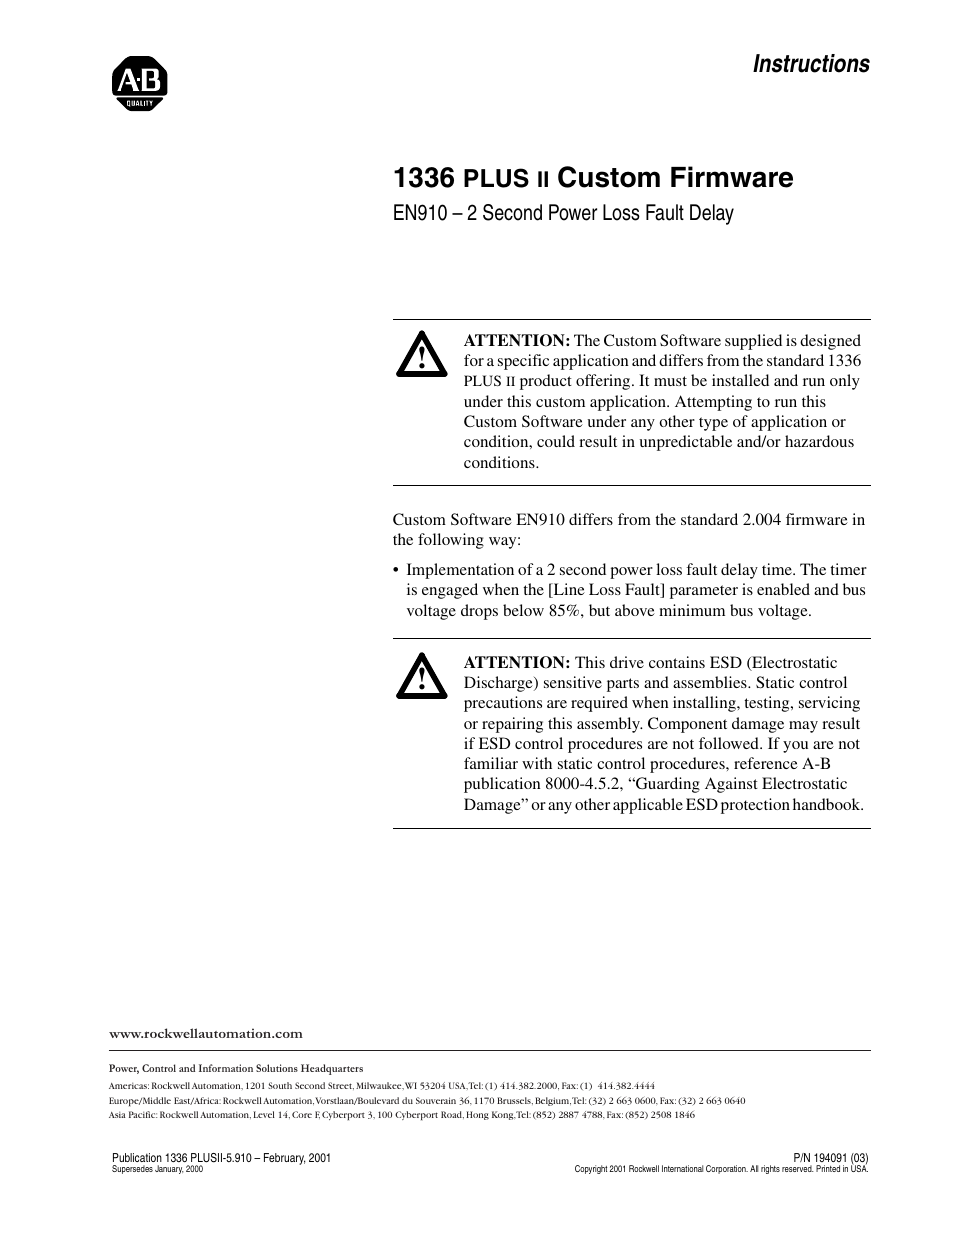 Rockwell Automation 1336F PLUS II Custom Firmware Inst. - EN910 User Manual  | 2 pages